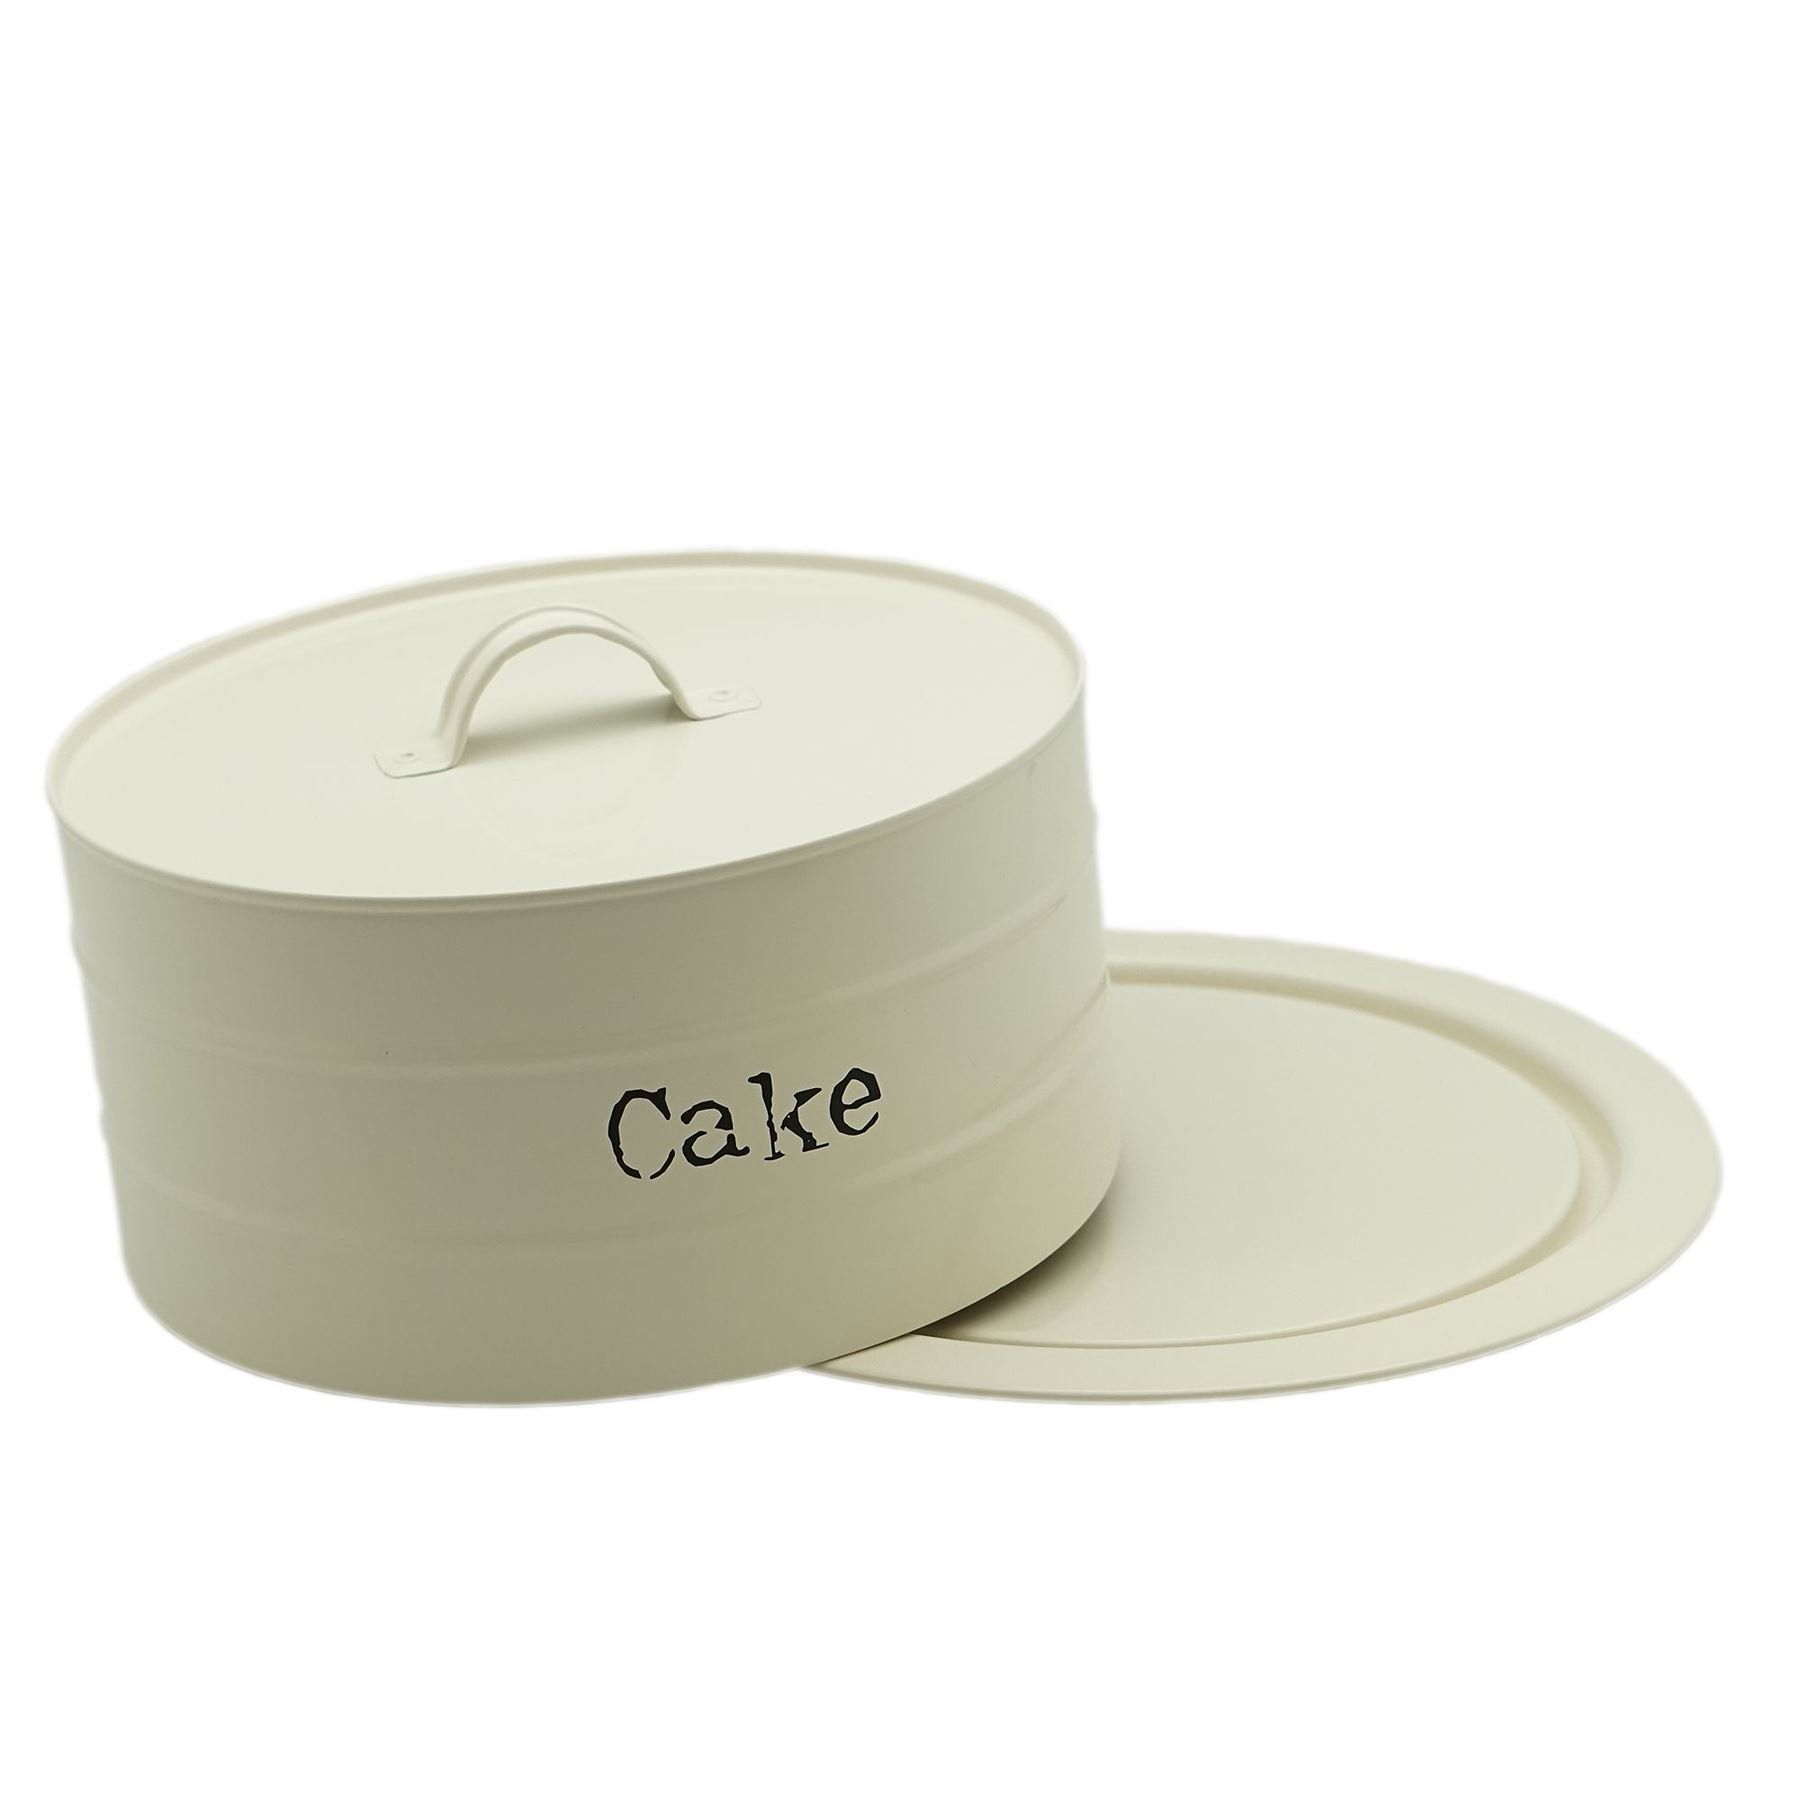 13 99 Big Discount Metal Airtight Cake Storage Tin Cake Dome 270x115mm Cream Discount Gift Amazon Baby Girl Boy Child Fashion Holiday Clothing